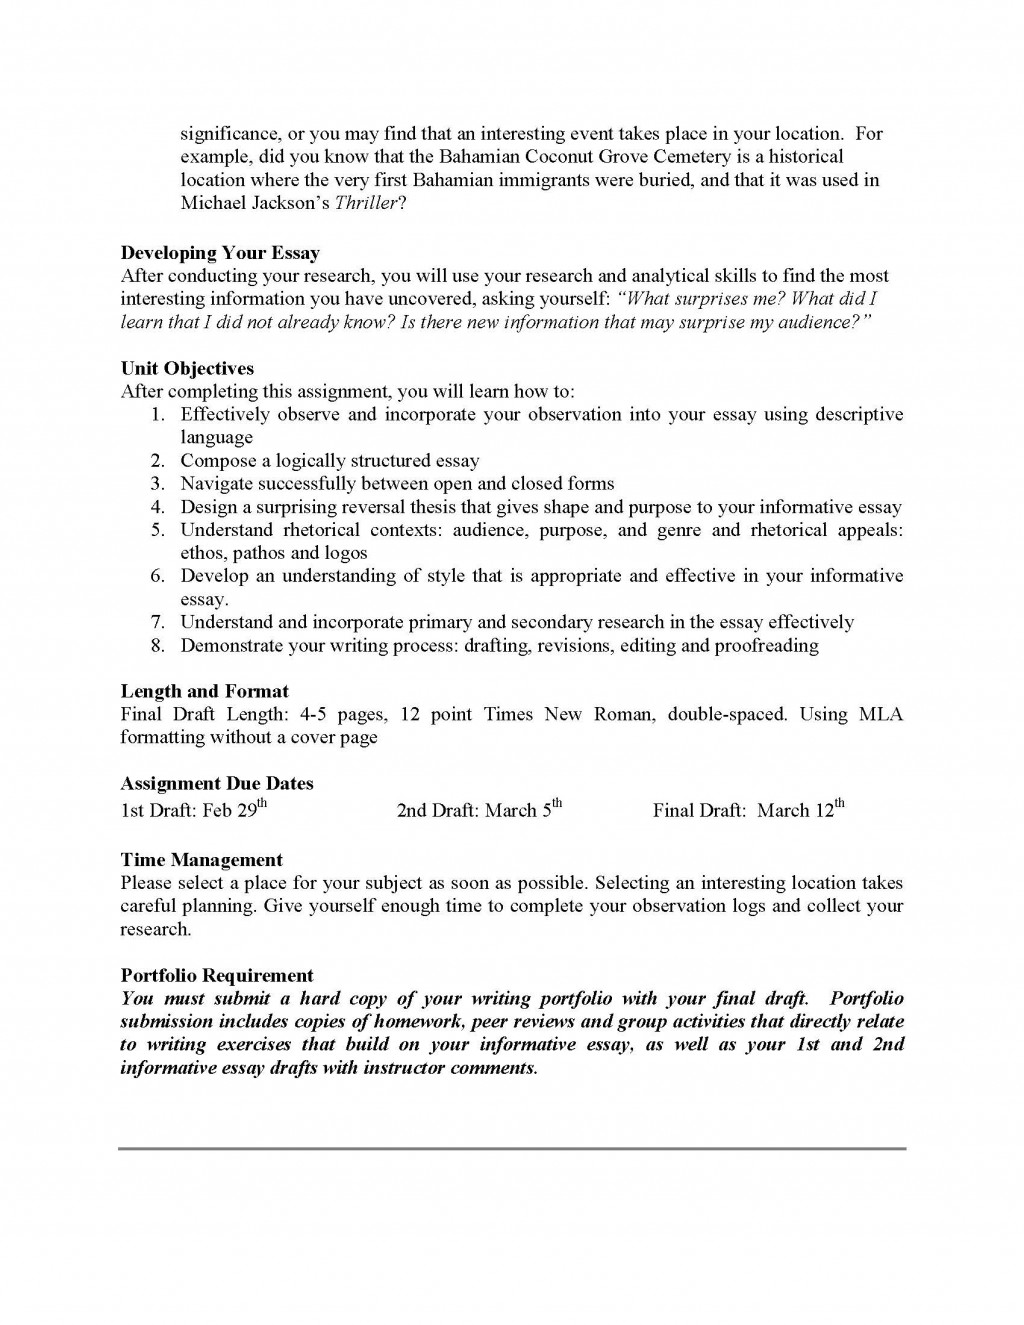 007 Essay Example Informative Unit Assignment Page 2 Informational Top Format Interview Explanatory Guidelines Quote Large